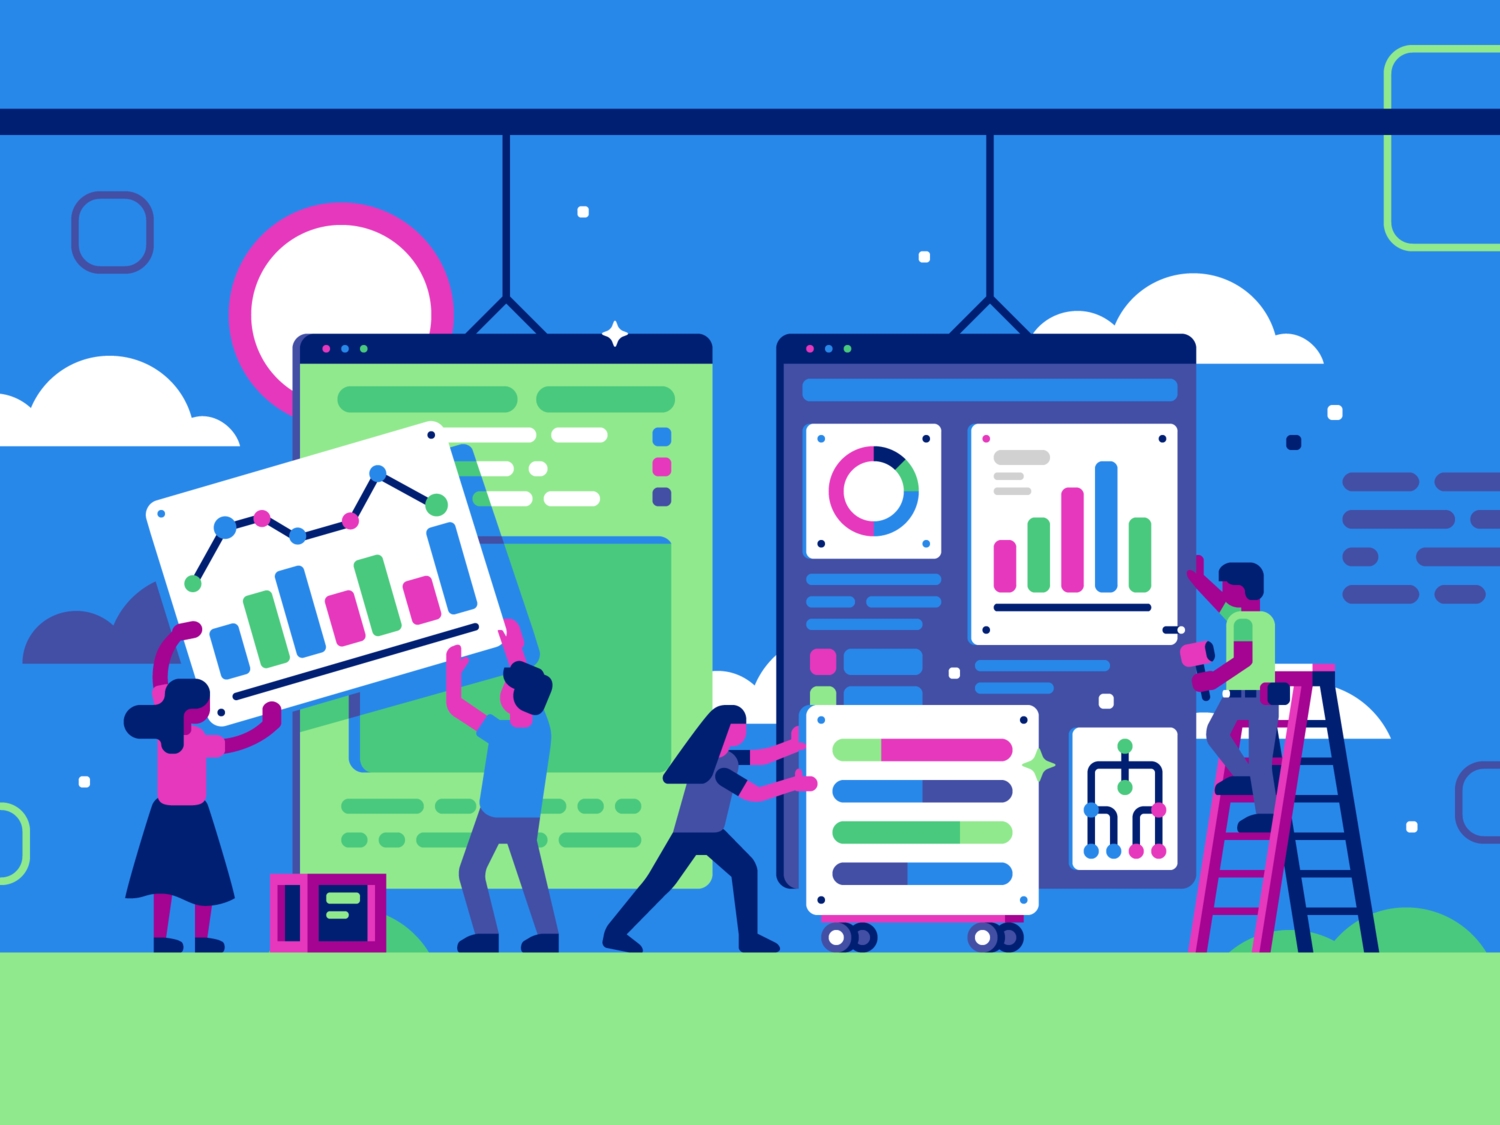 Users building website as construction crew. Illustration by Matt Anderson.